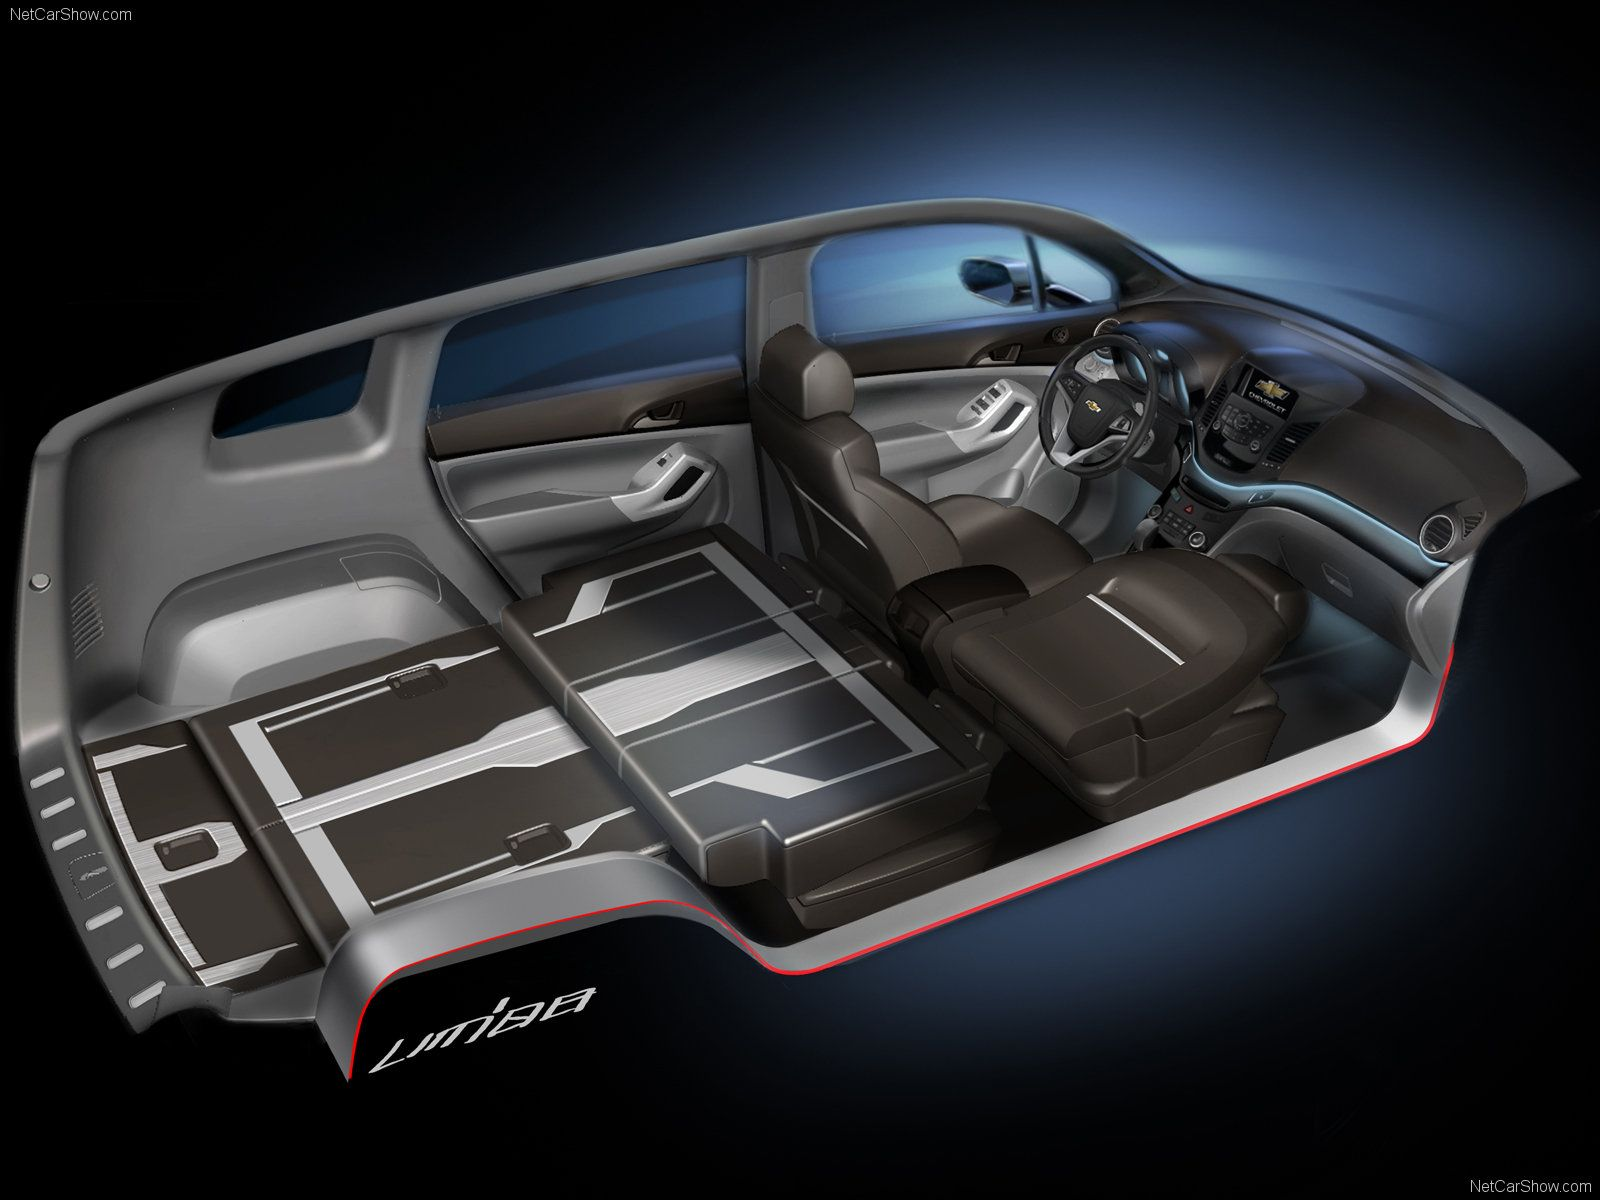 Pin By Maggie L92 On Automotive Trim Chevrolet Orlando Chevrolet Car Interior Sketch